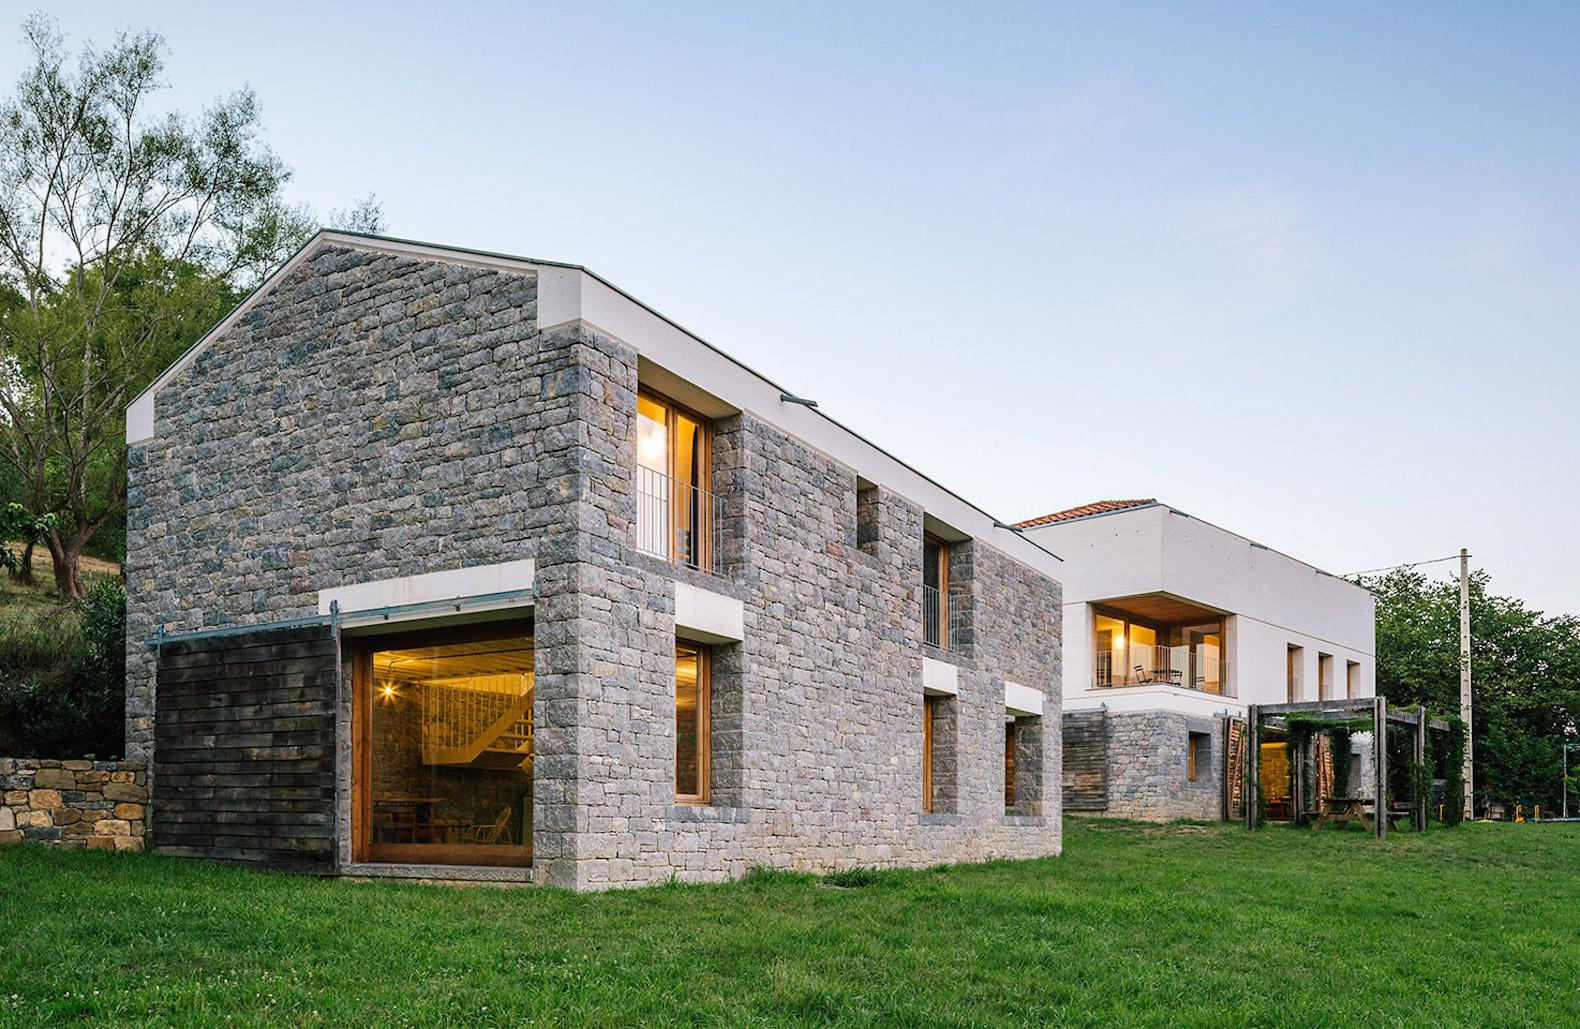 Rustic Stone Farmhouse Stable Hides Beautiful